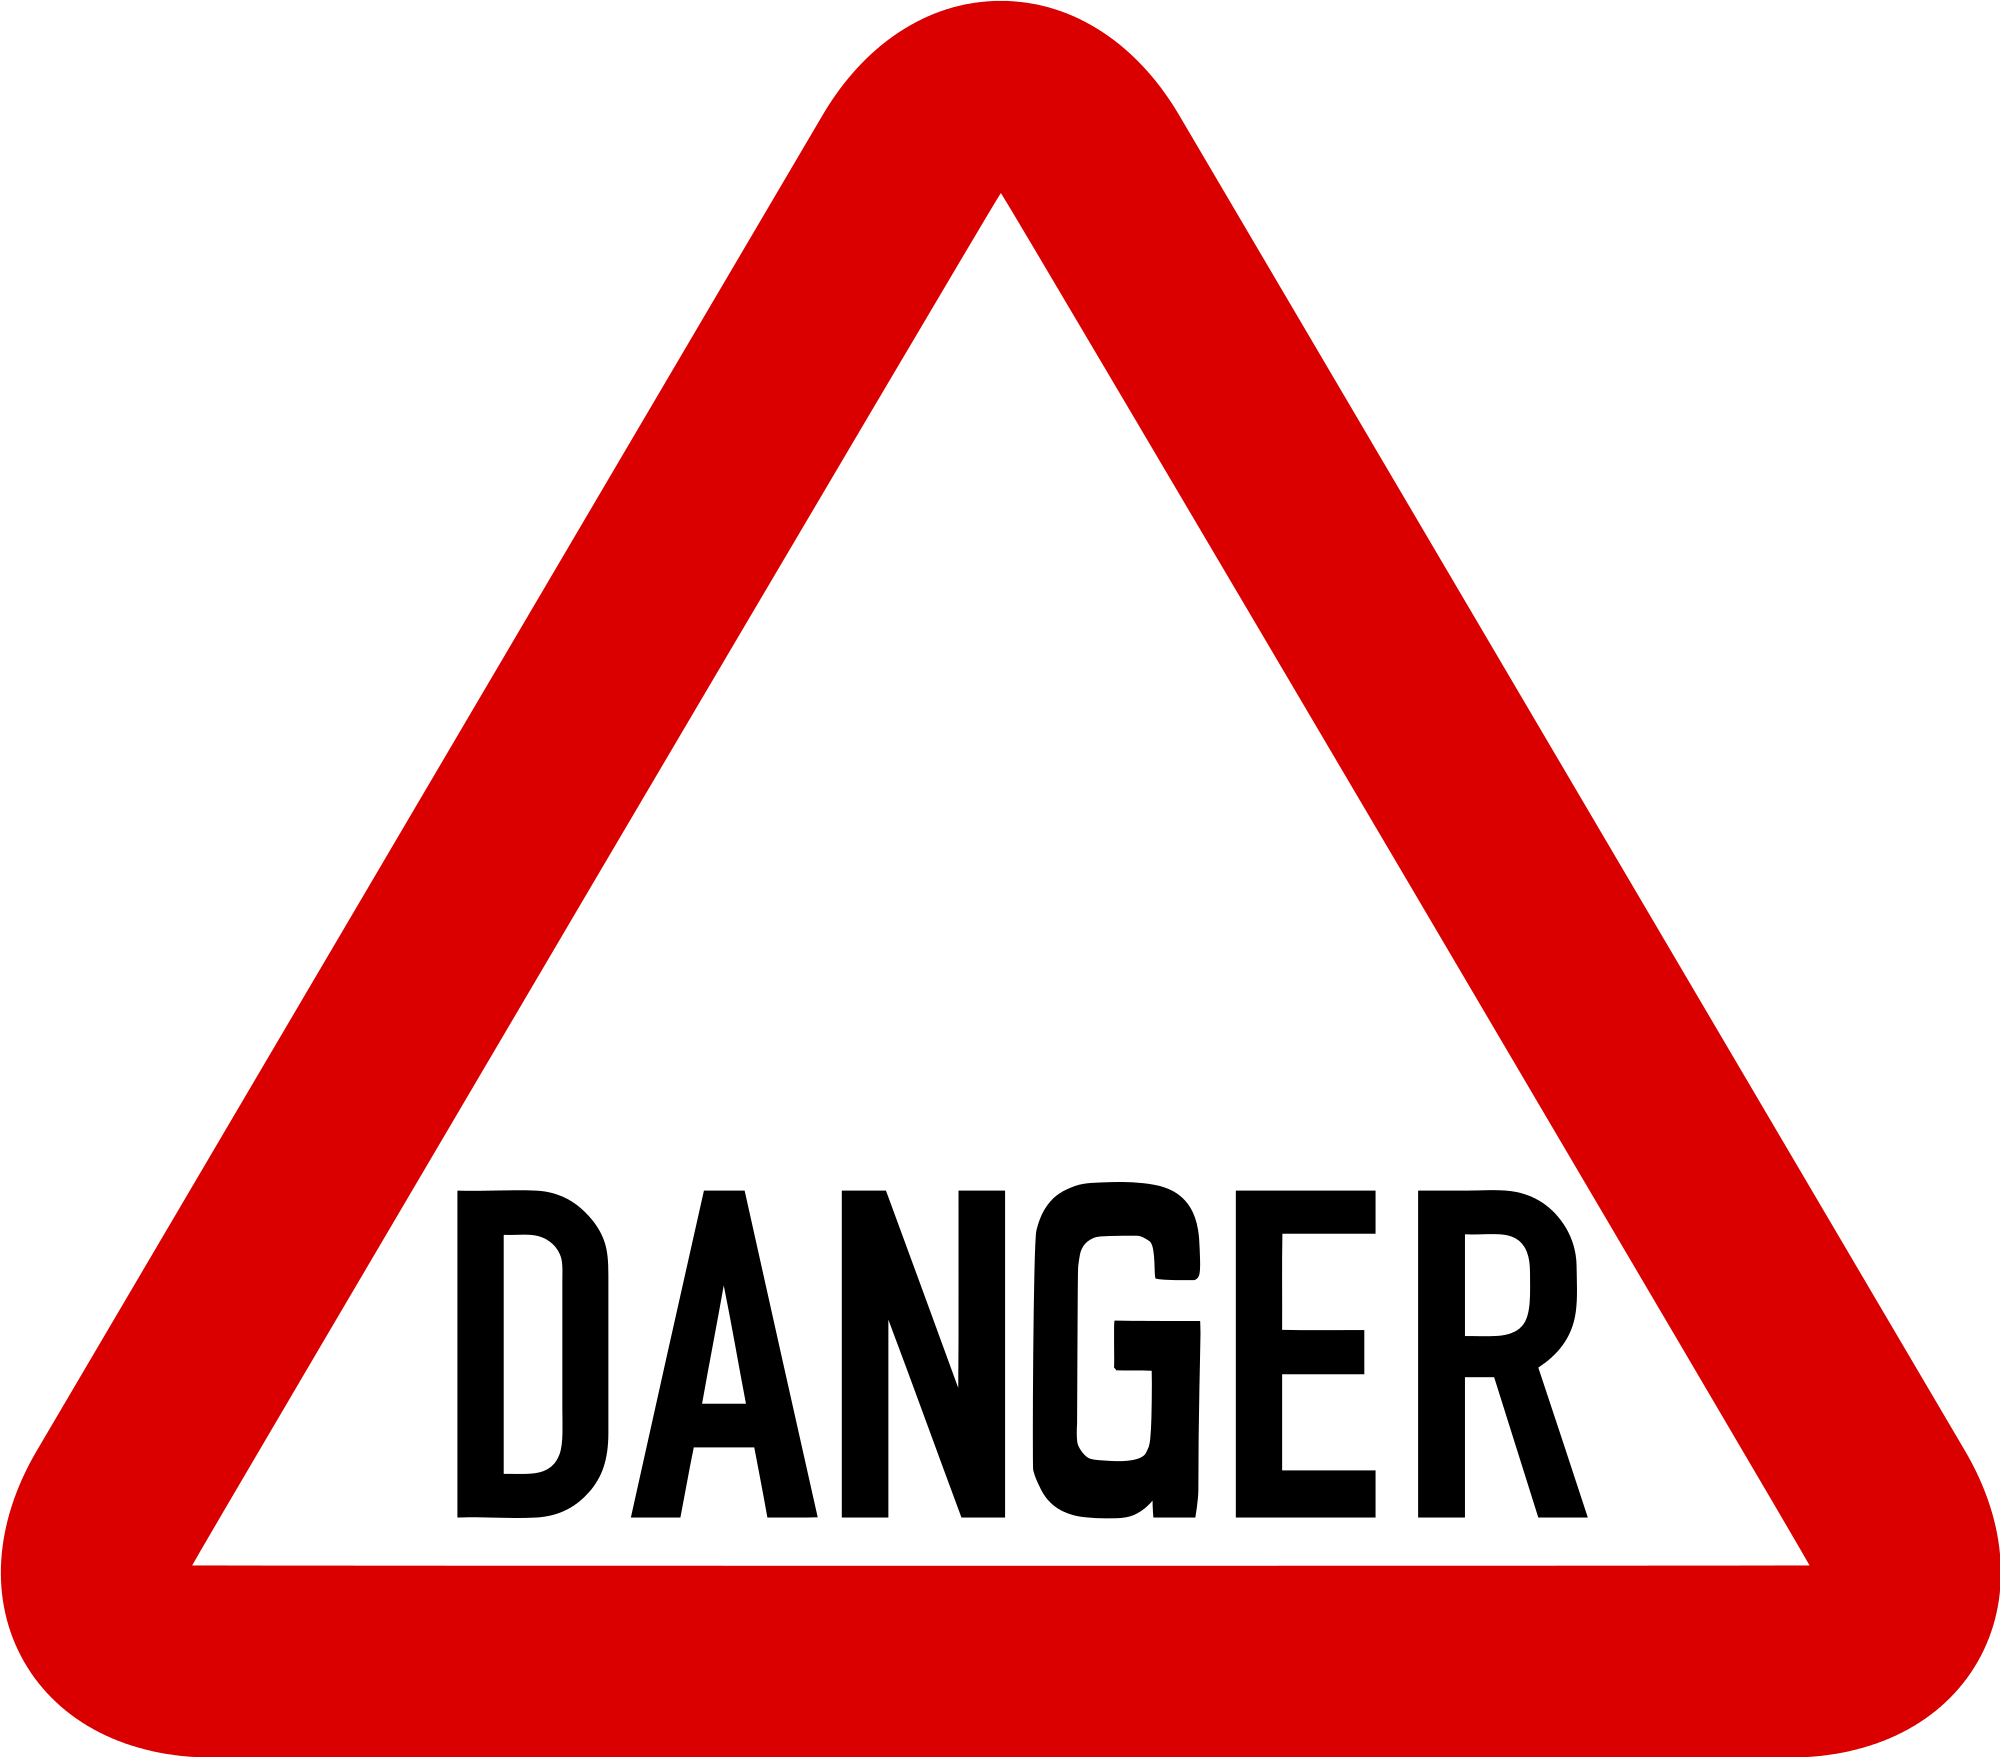 Danger road signs